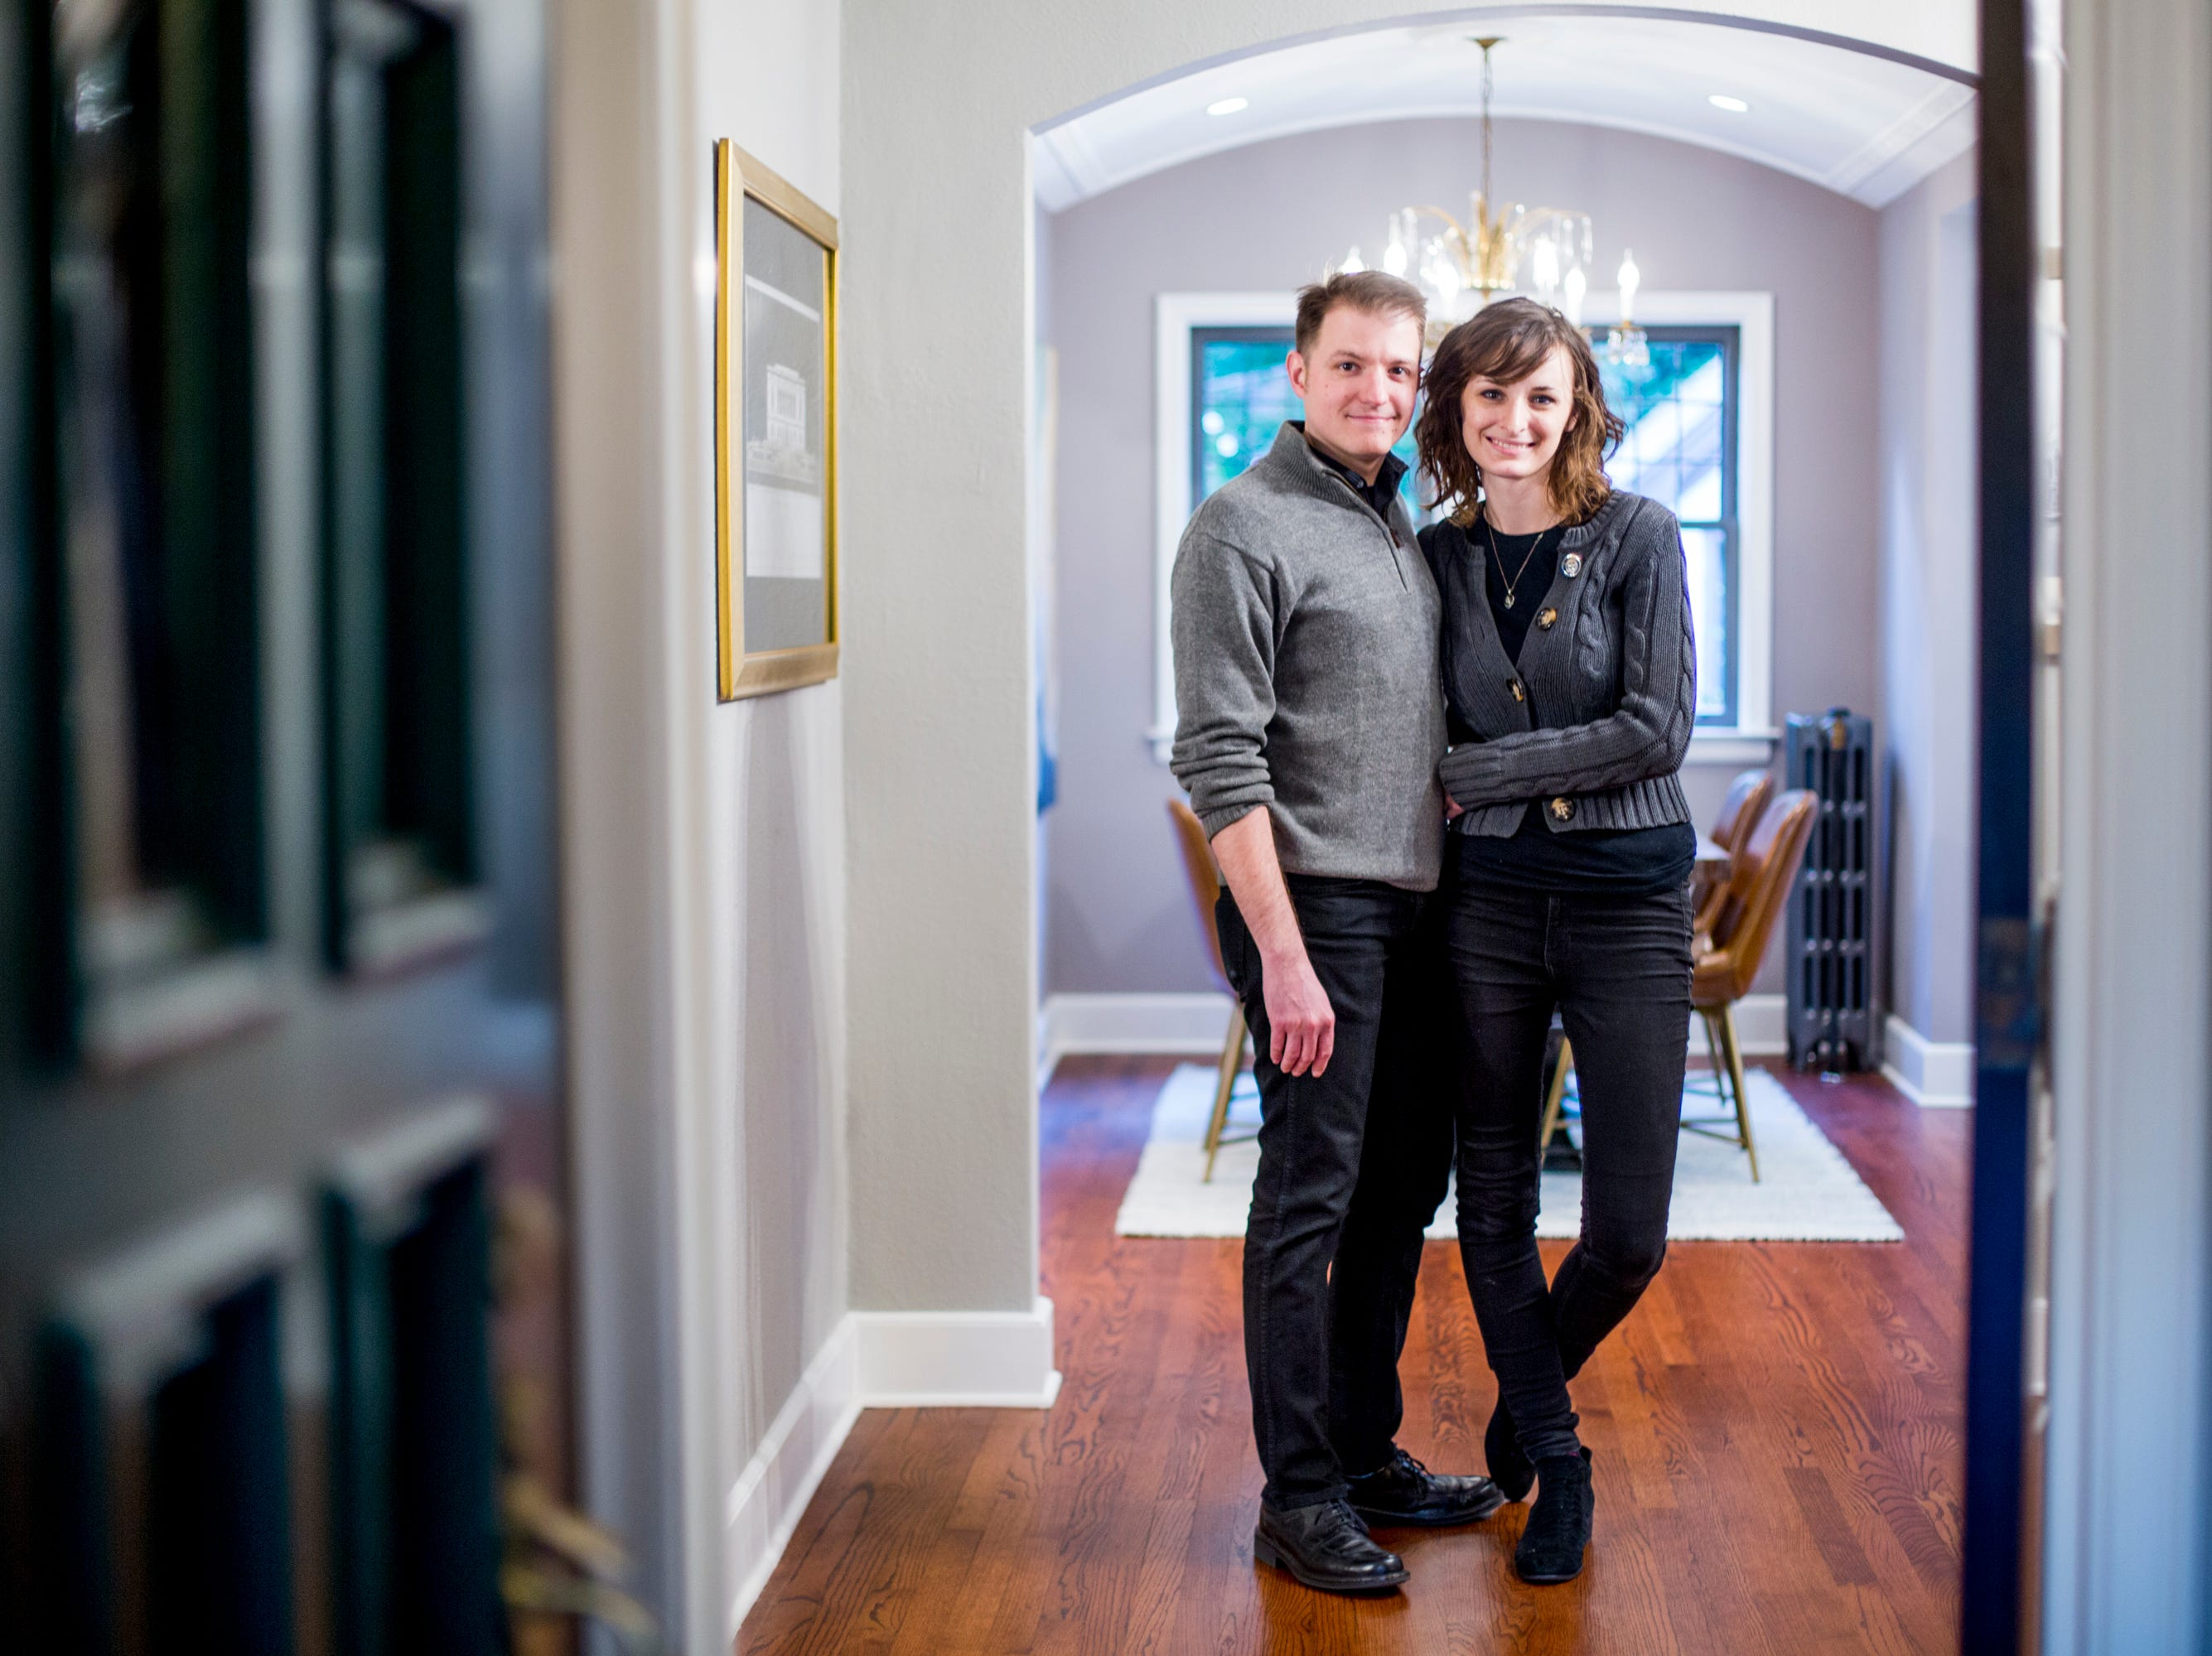 Miranda Steinhauser, poses for a photo with her partner Brandon Suman, in her home at 17405 Wildemere Street in the University District in Detroit.